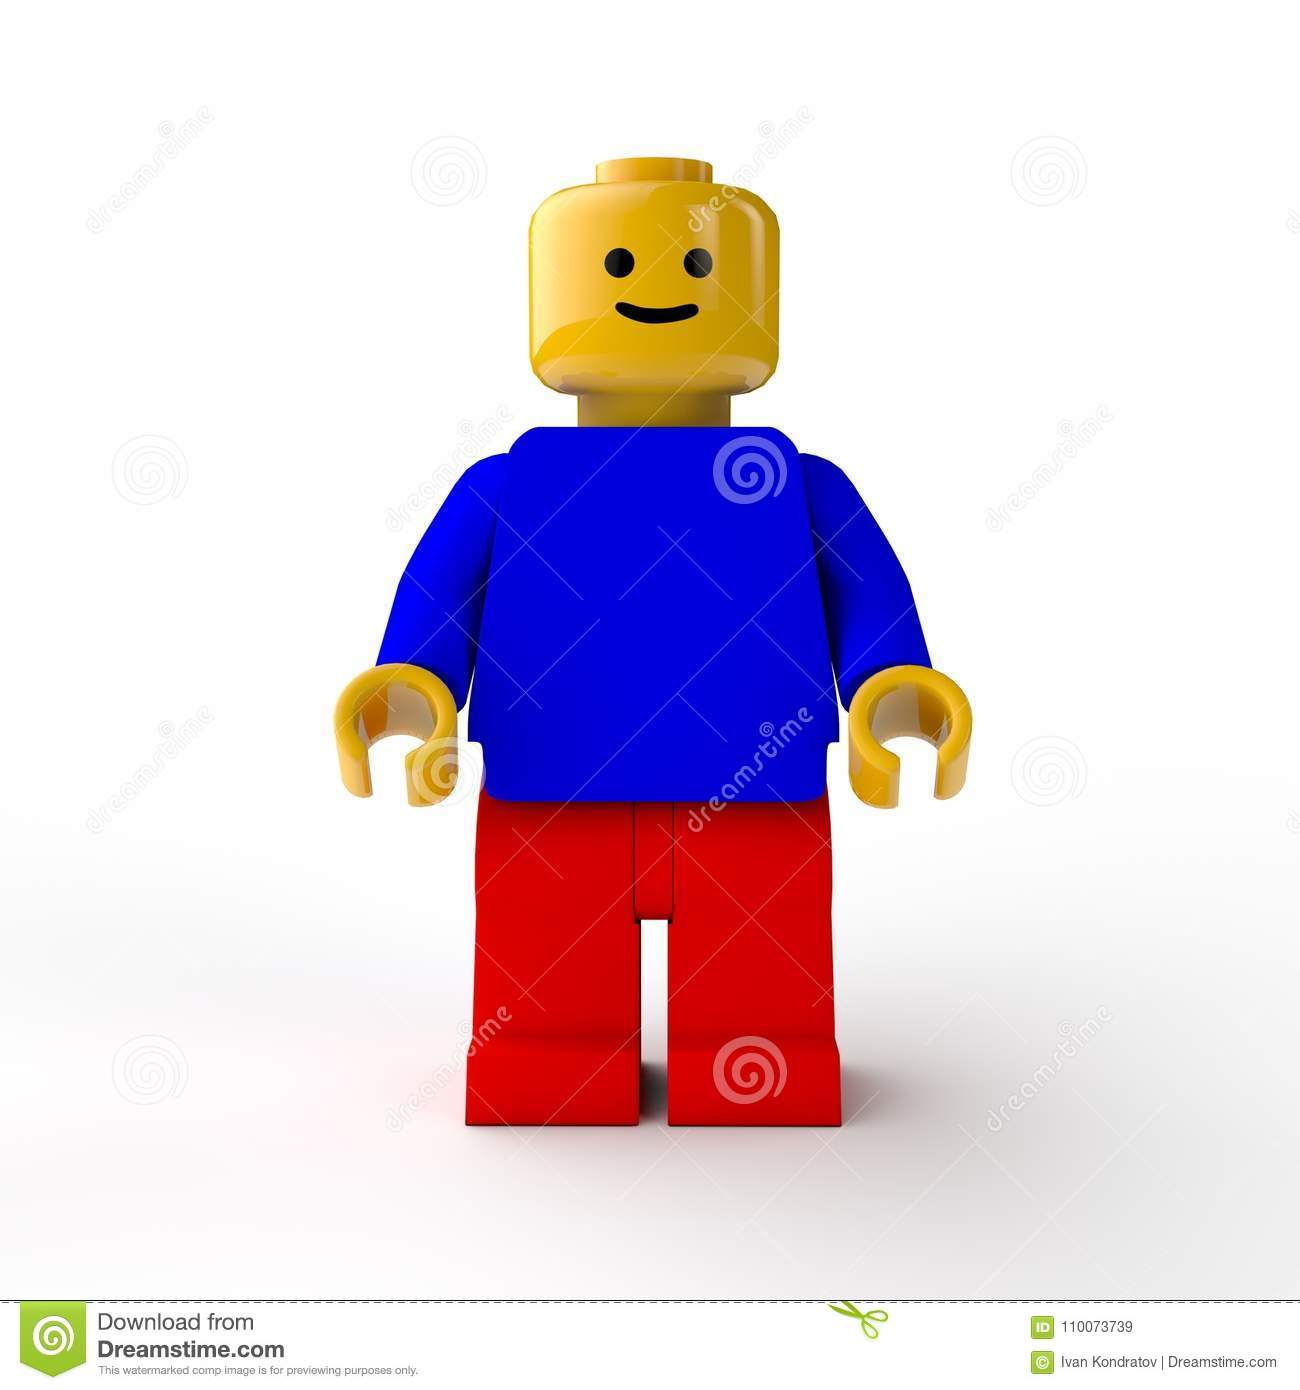 Figure LEGO, the toy.